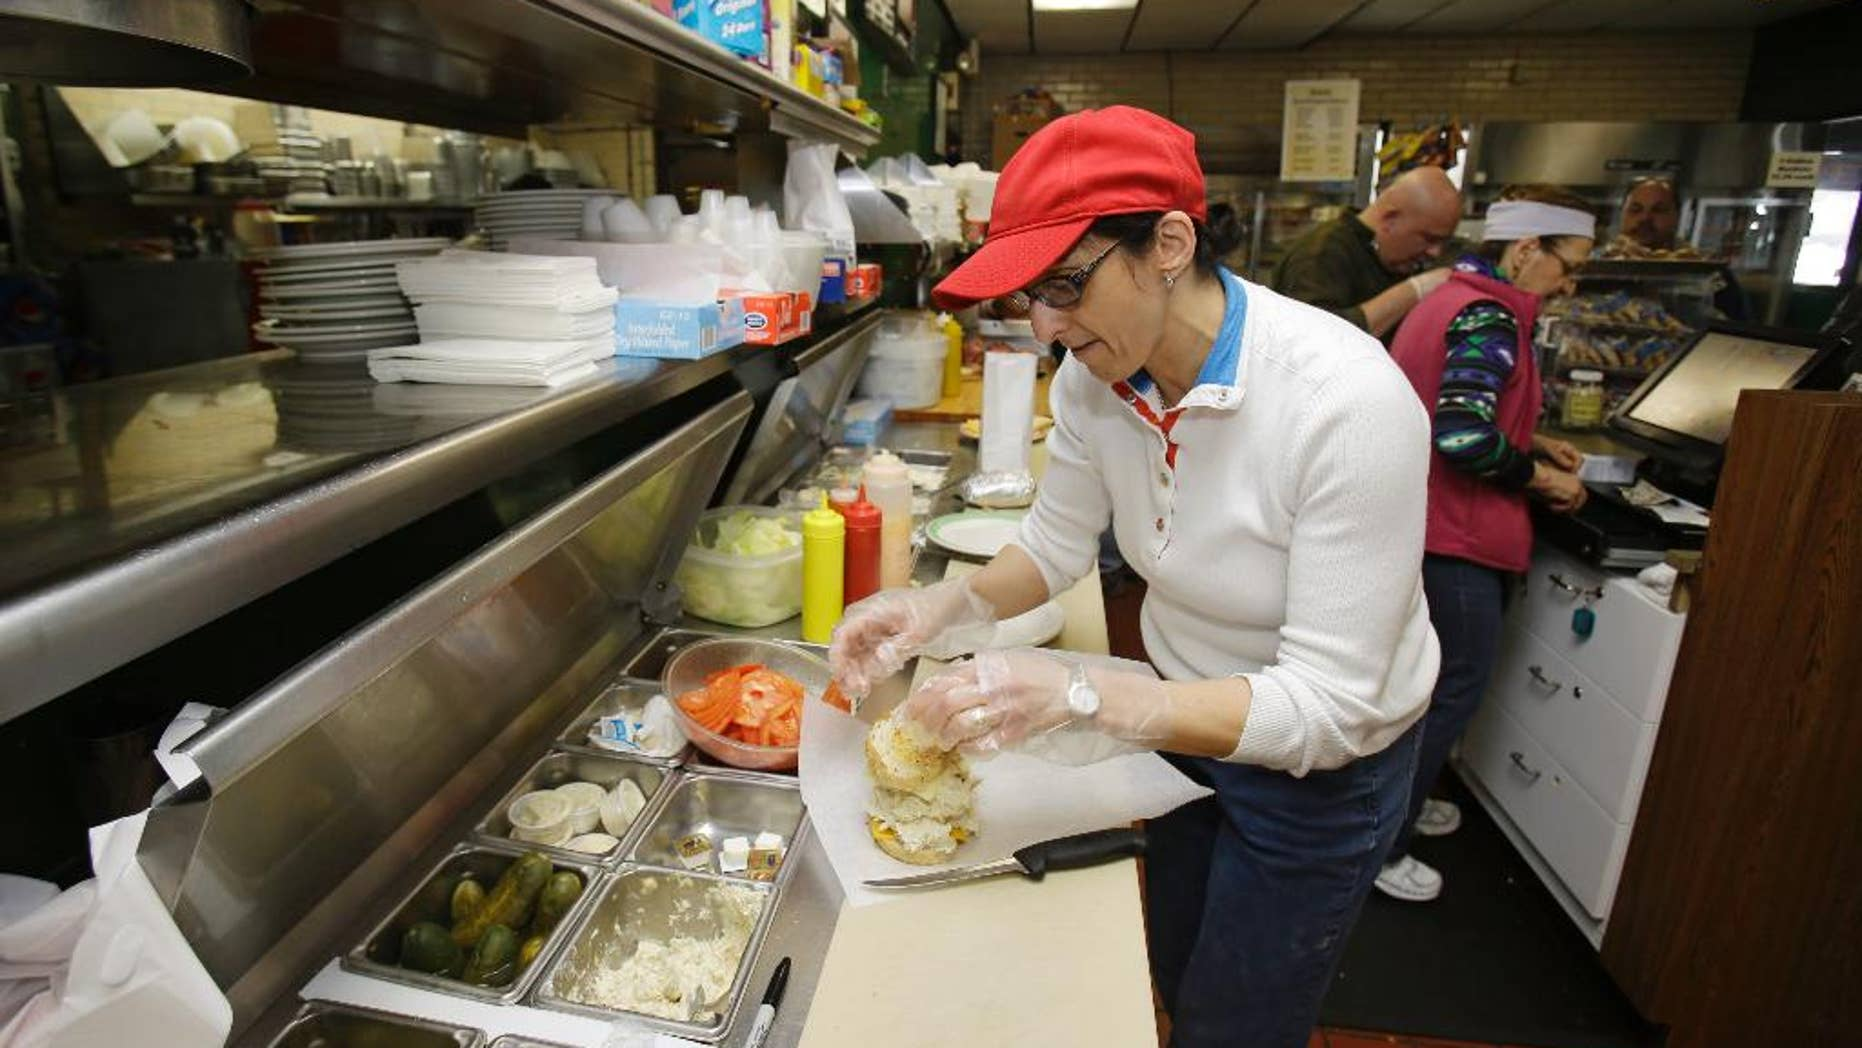 In this Friday, Jan. 23, 2015 photo, Collett Elkhouria makes a chicken salad sandwich the Superior Restaurant in Cleveland. The Institute for Supply Management releases its service sector index for February on Wednesday, March 4, 2015. (AP Photo/Tony Dejak)